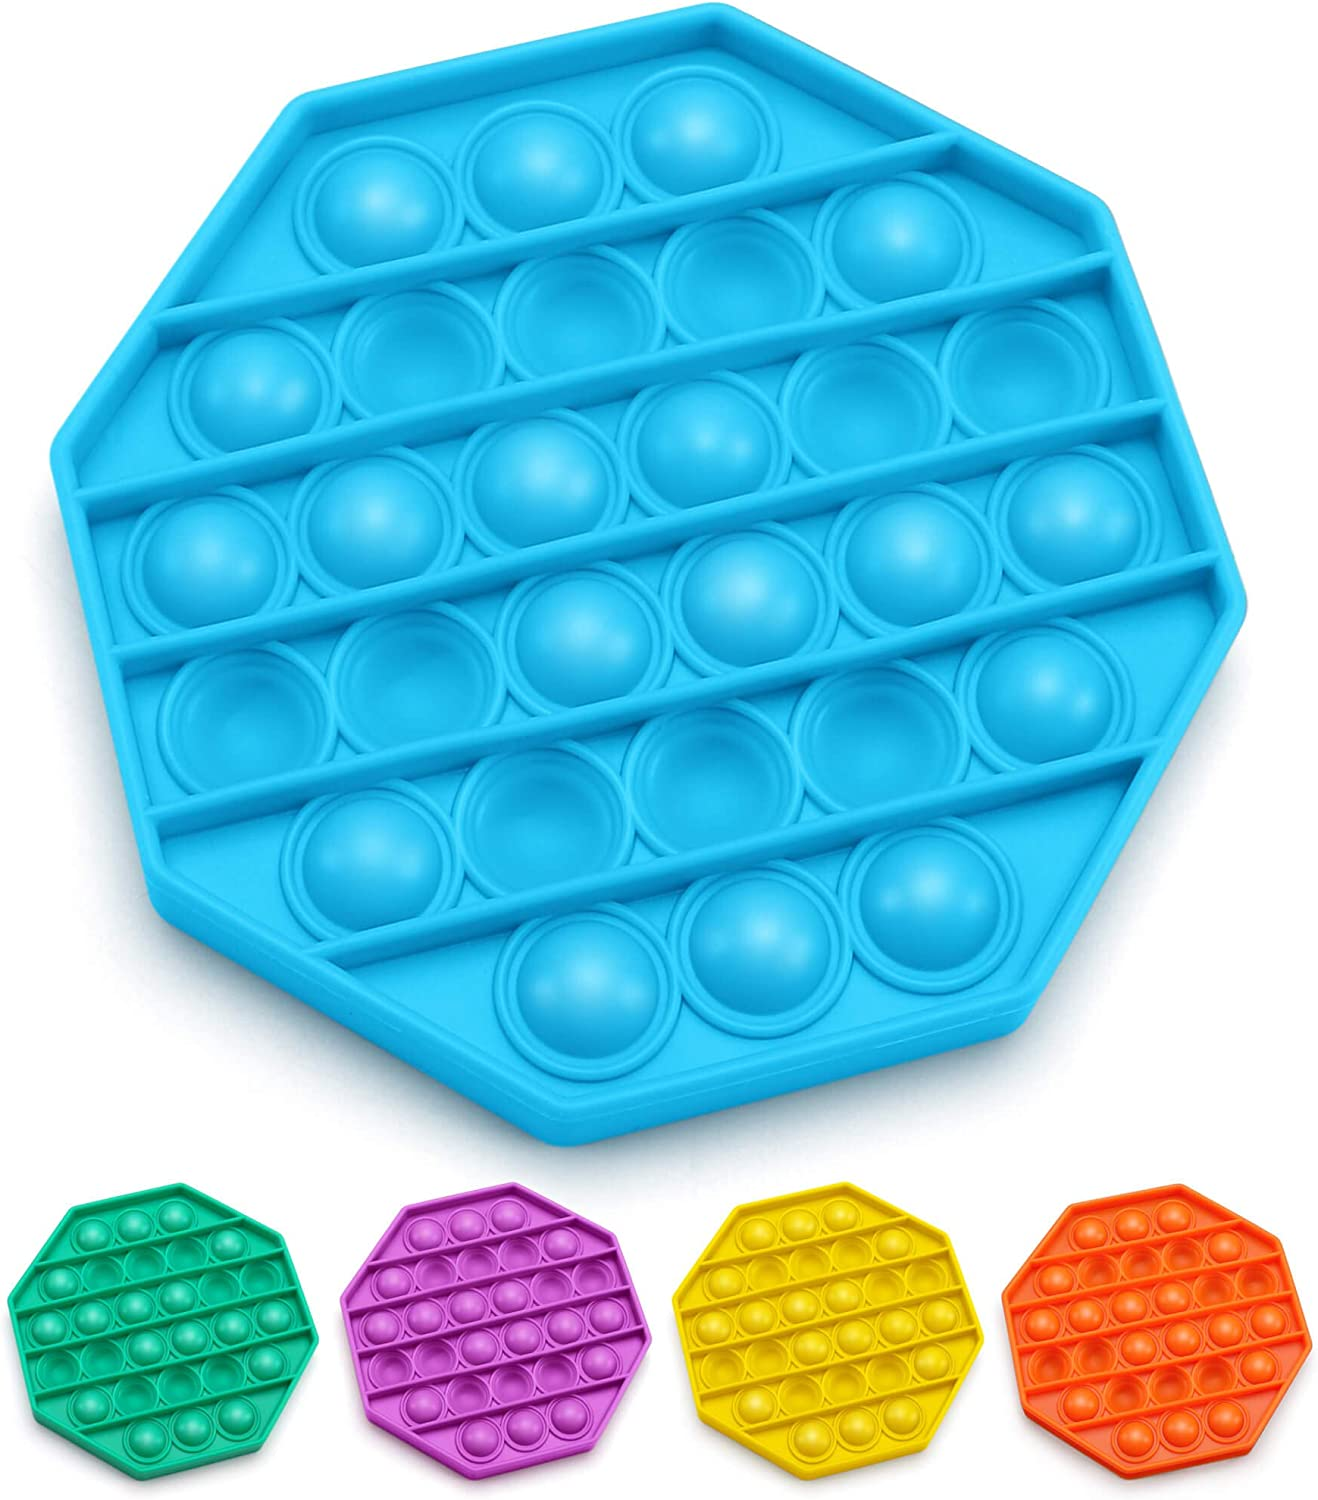 Bubble Popper Fidget Toy Stress Anxiety Relief Toys for ADHD Autism Special Needs Fidget Popper Stress Reliever Toys Push Pop Bubble Fidget Sensory Toy Square Blue Fidget Toys for Kids Adults